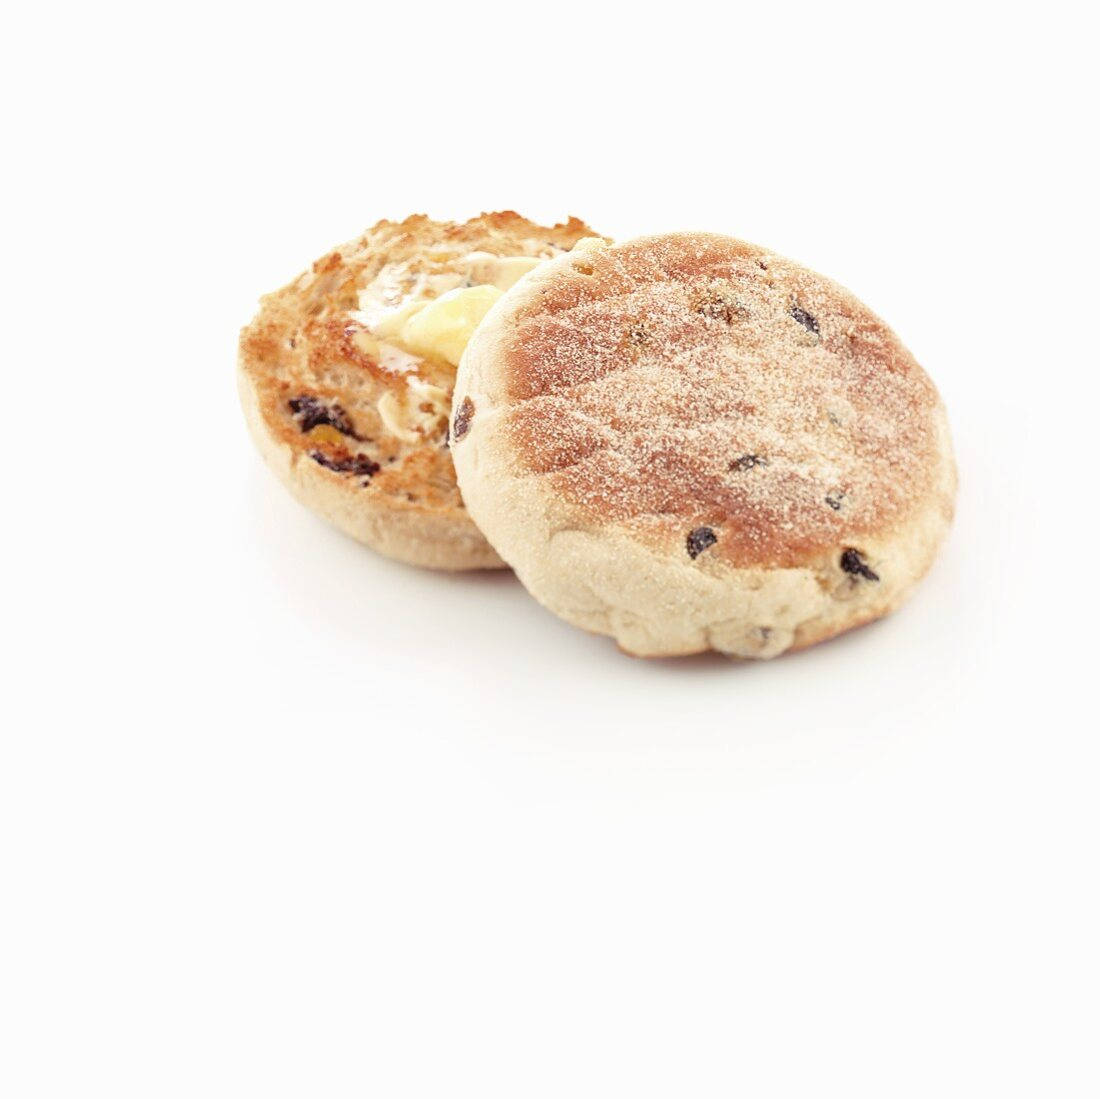 Buttered, toasted English fruit muffin